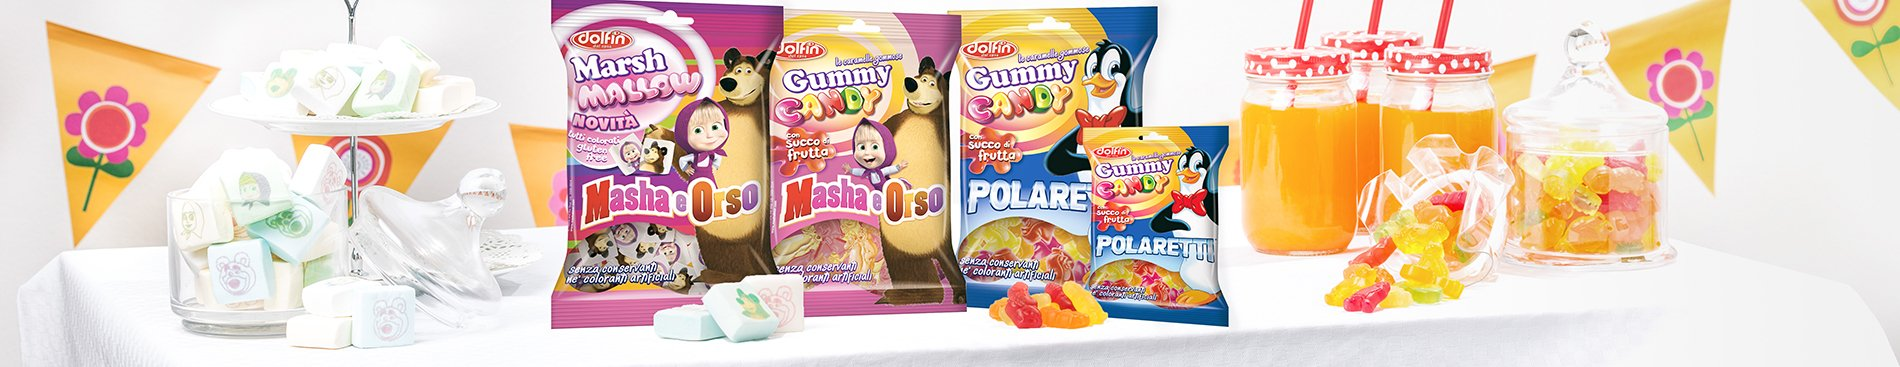 2015 Marshmallow e Gummy Candy